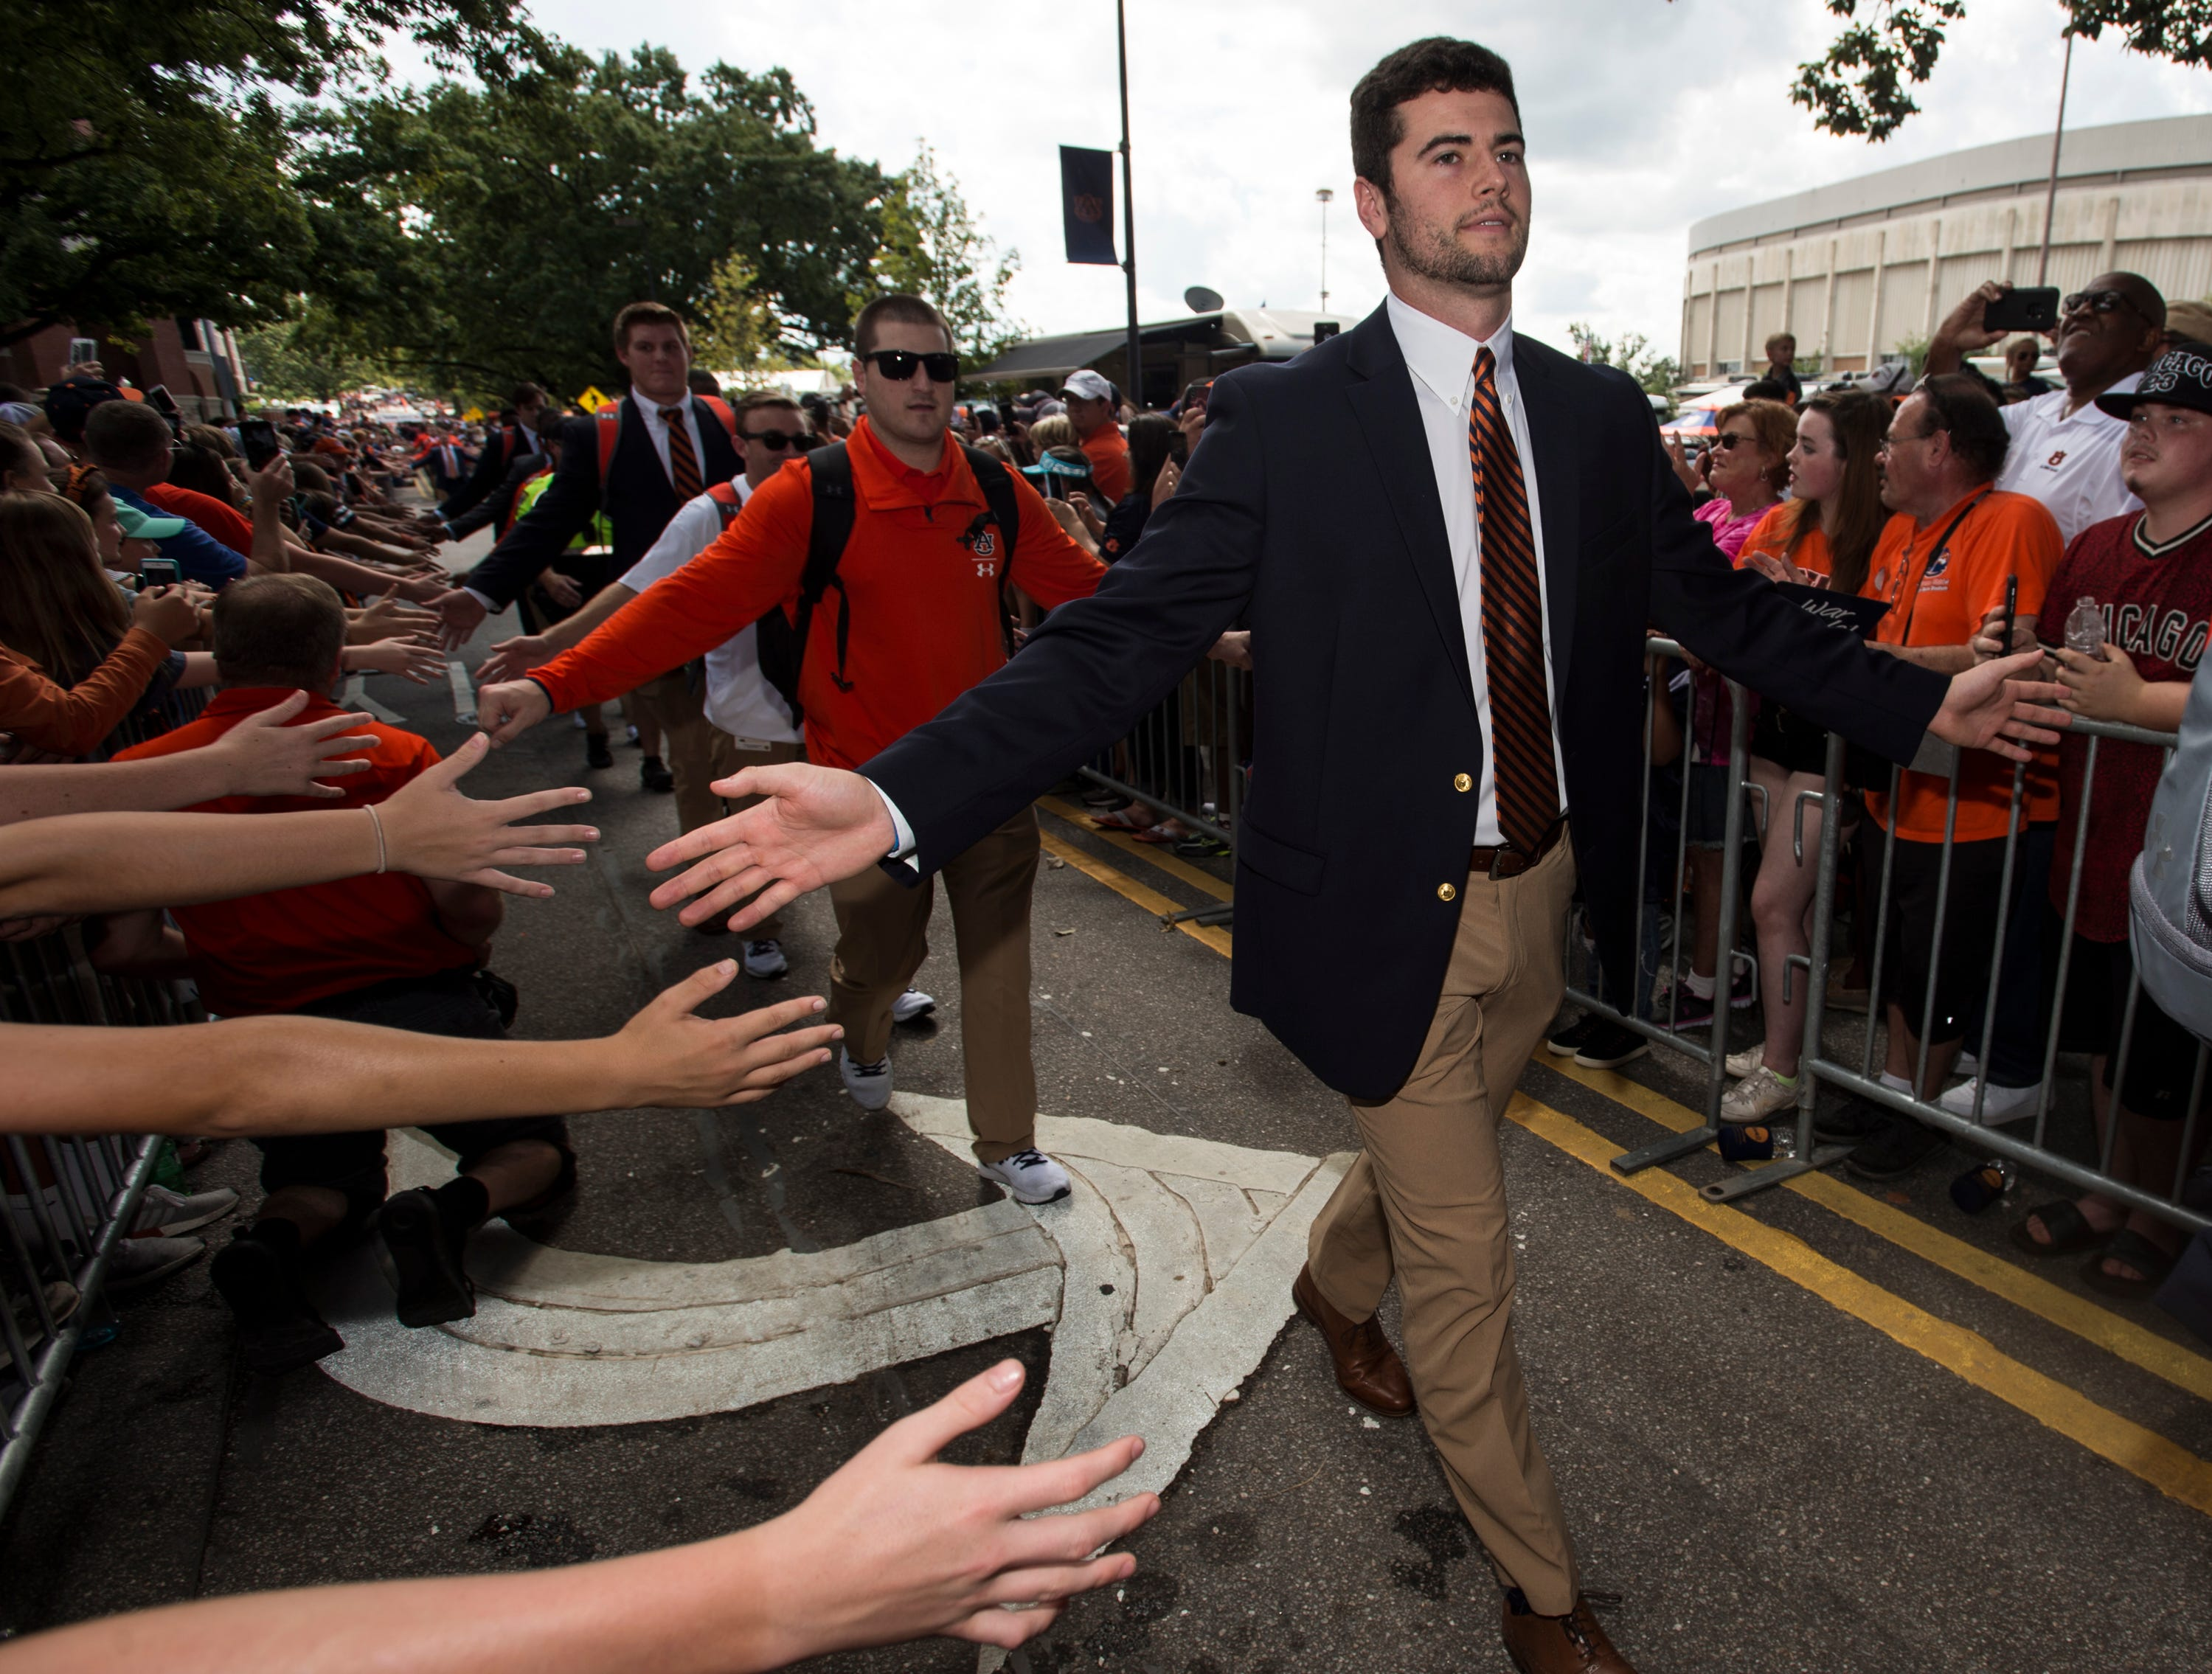 Auburn's Jarrett Stidham high fives fans during the Tiger Walk outside Jordan-Hare Stadium in Auburn, Ala., on Saturday, Sept. 29, 2018.